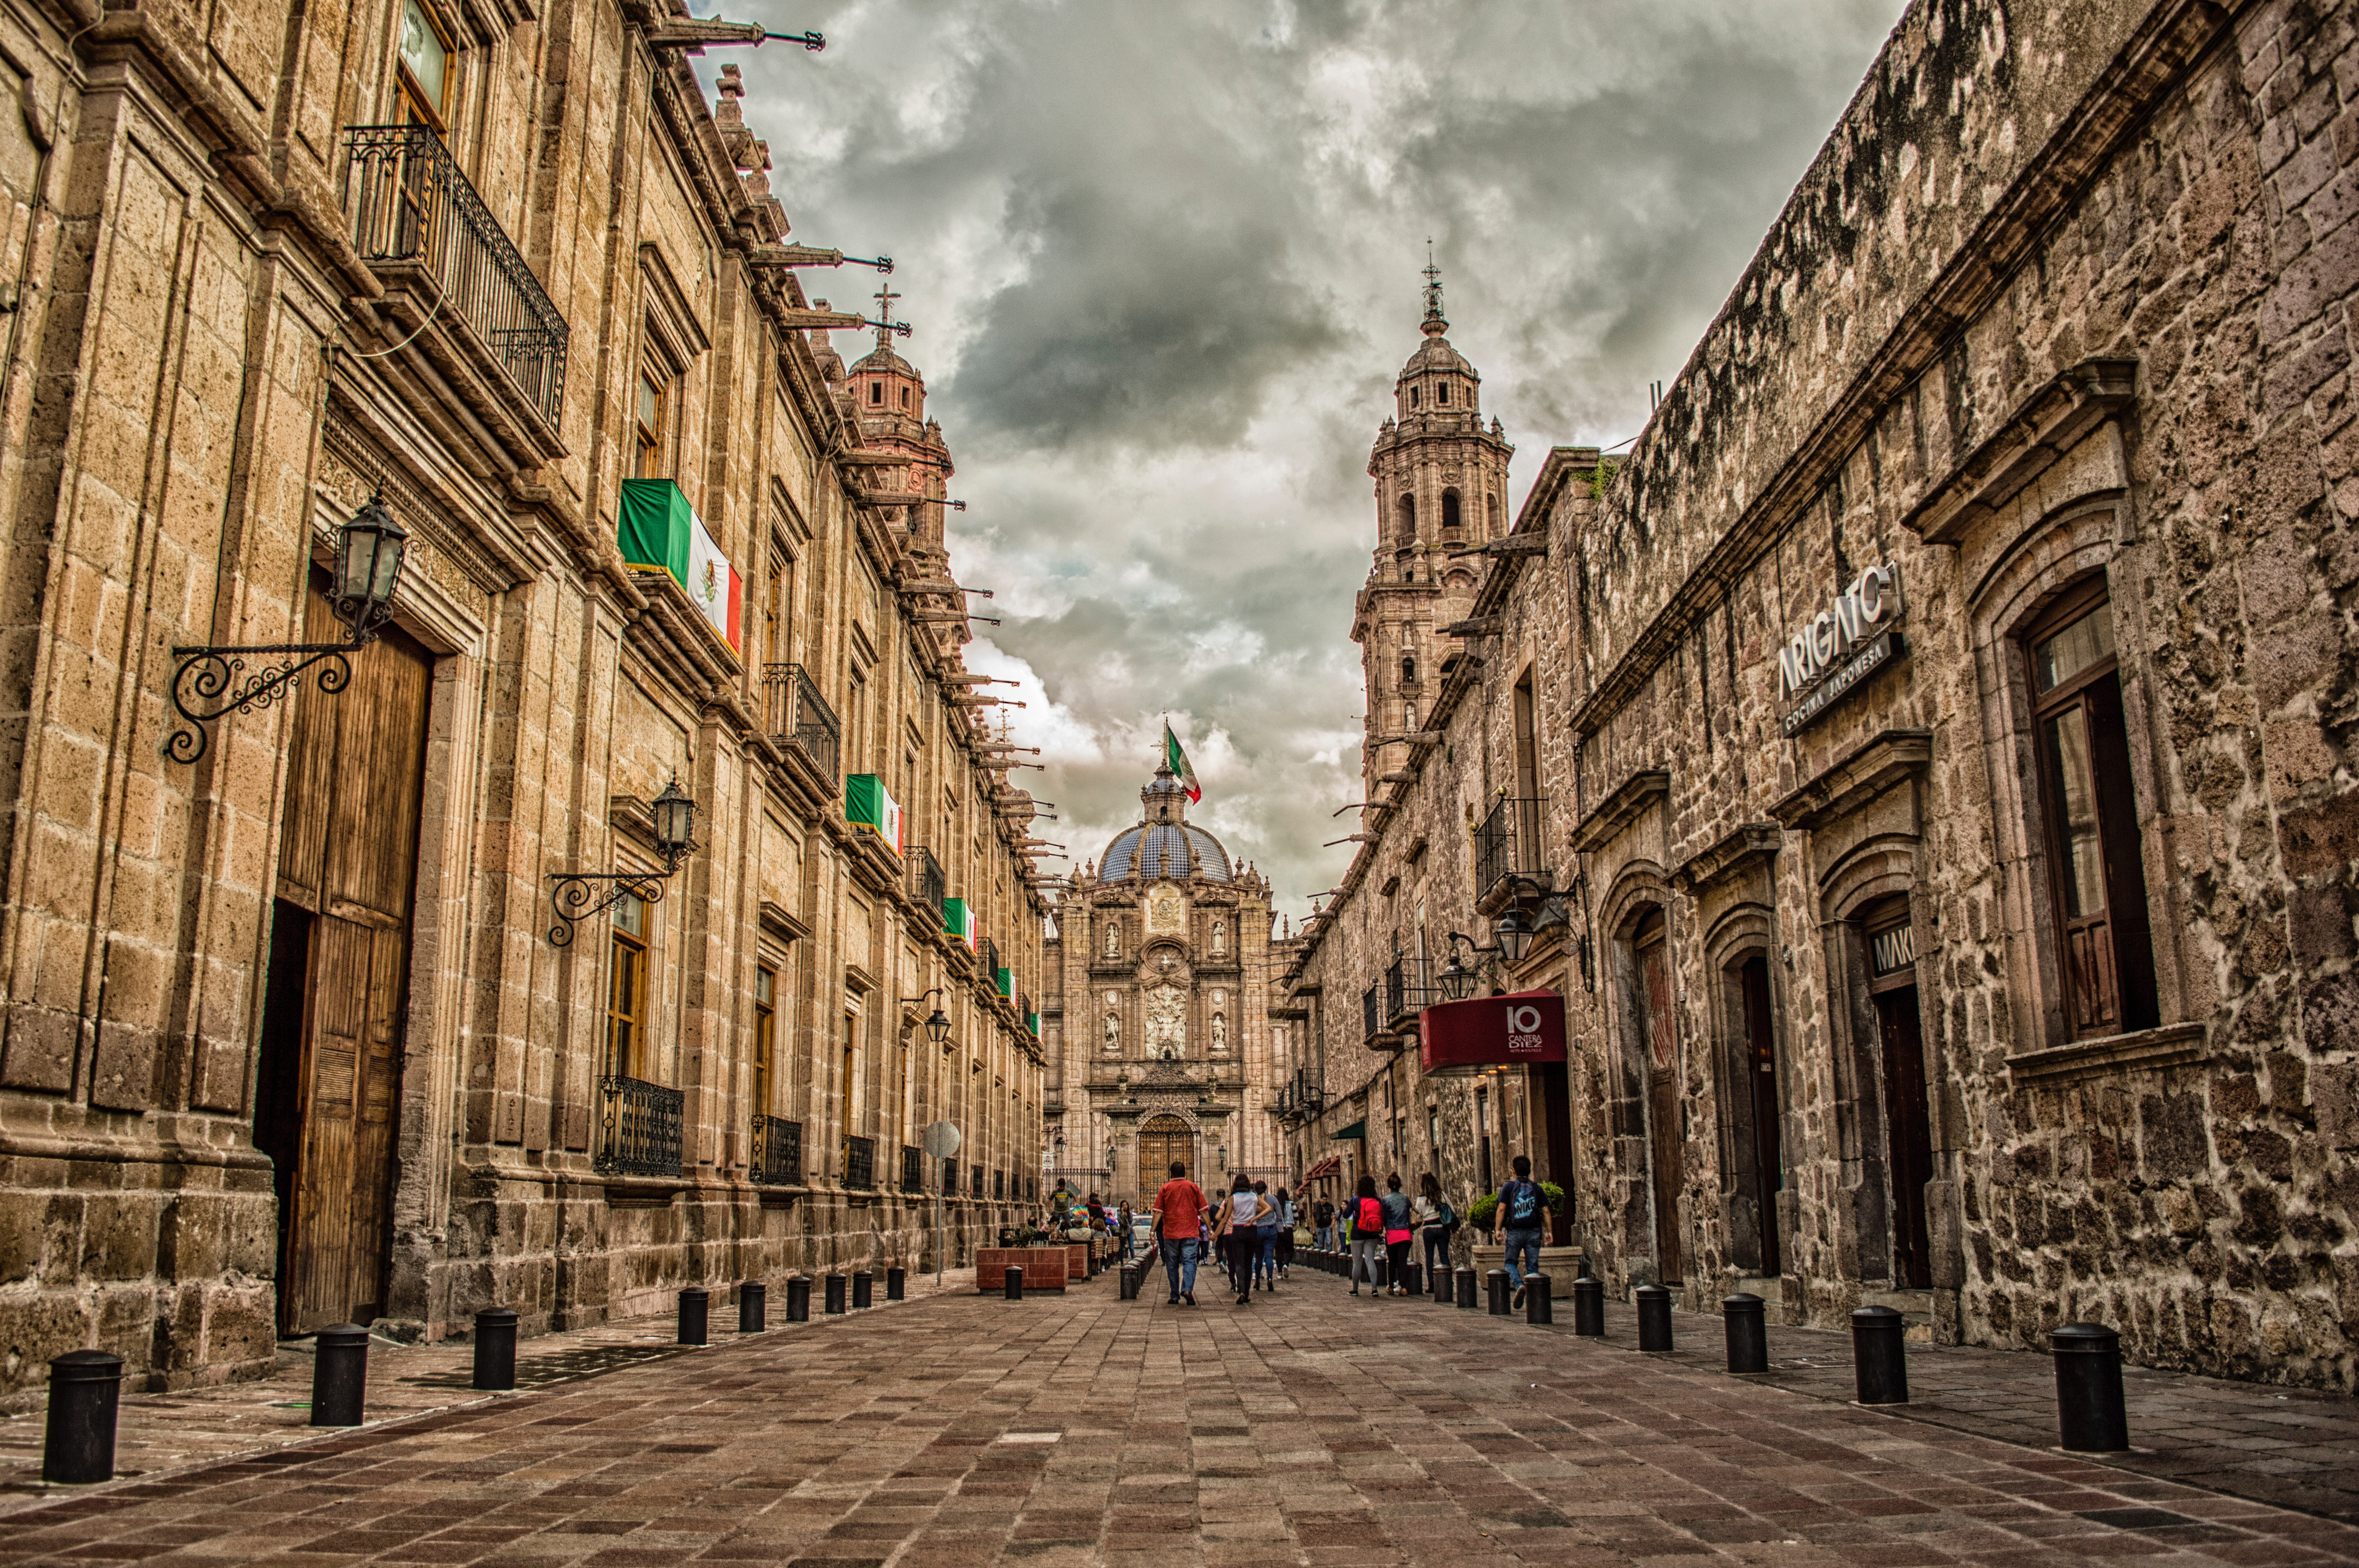 Mexico Flag on Brown 2-storey Building, Ancient, Shop, Low angle shot, Monument, HQ Photo